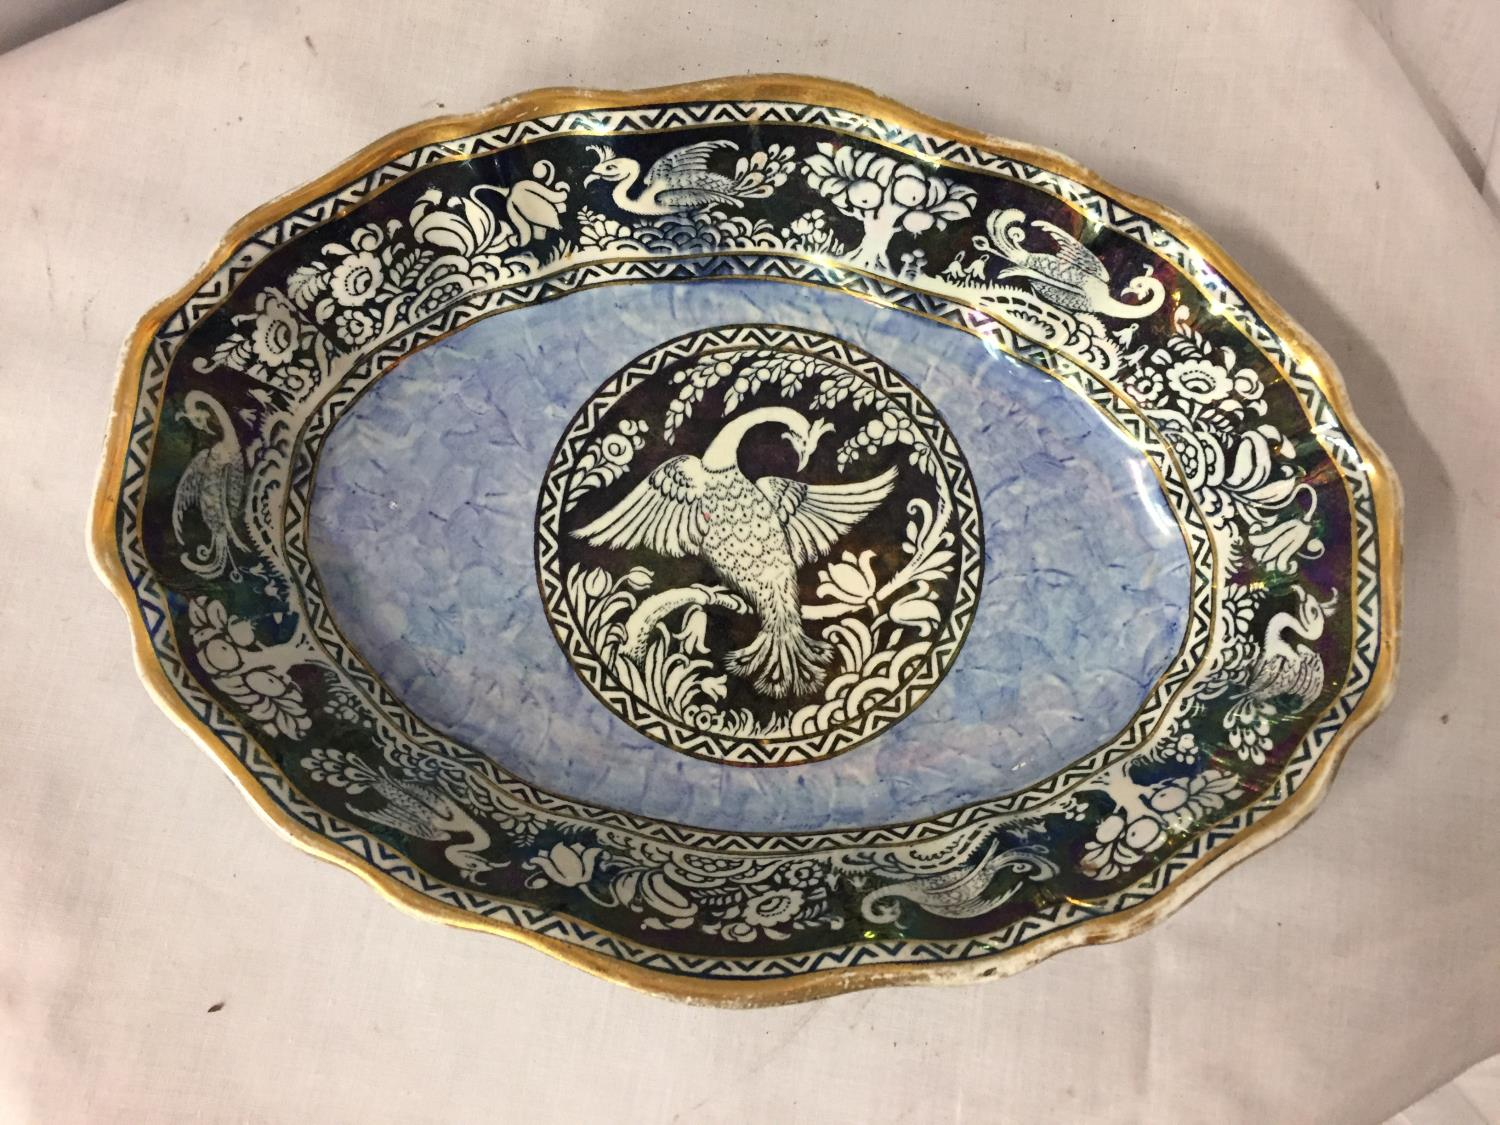 A NEWHALL 'BOUMIER WARE' BLUE AND WHITE DISH - Image 2 of 3